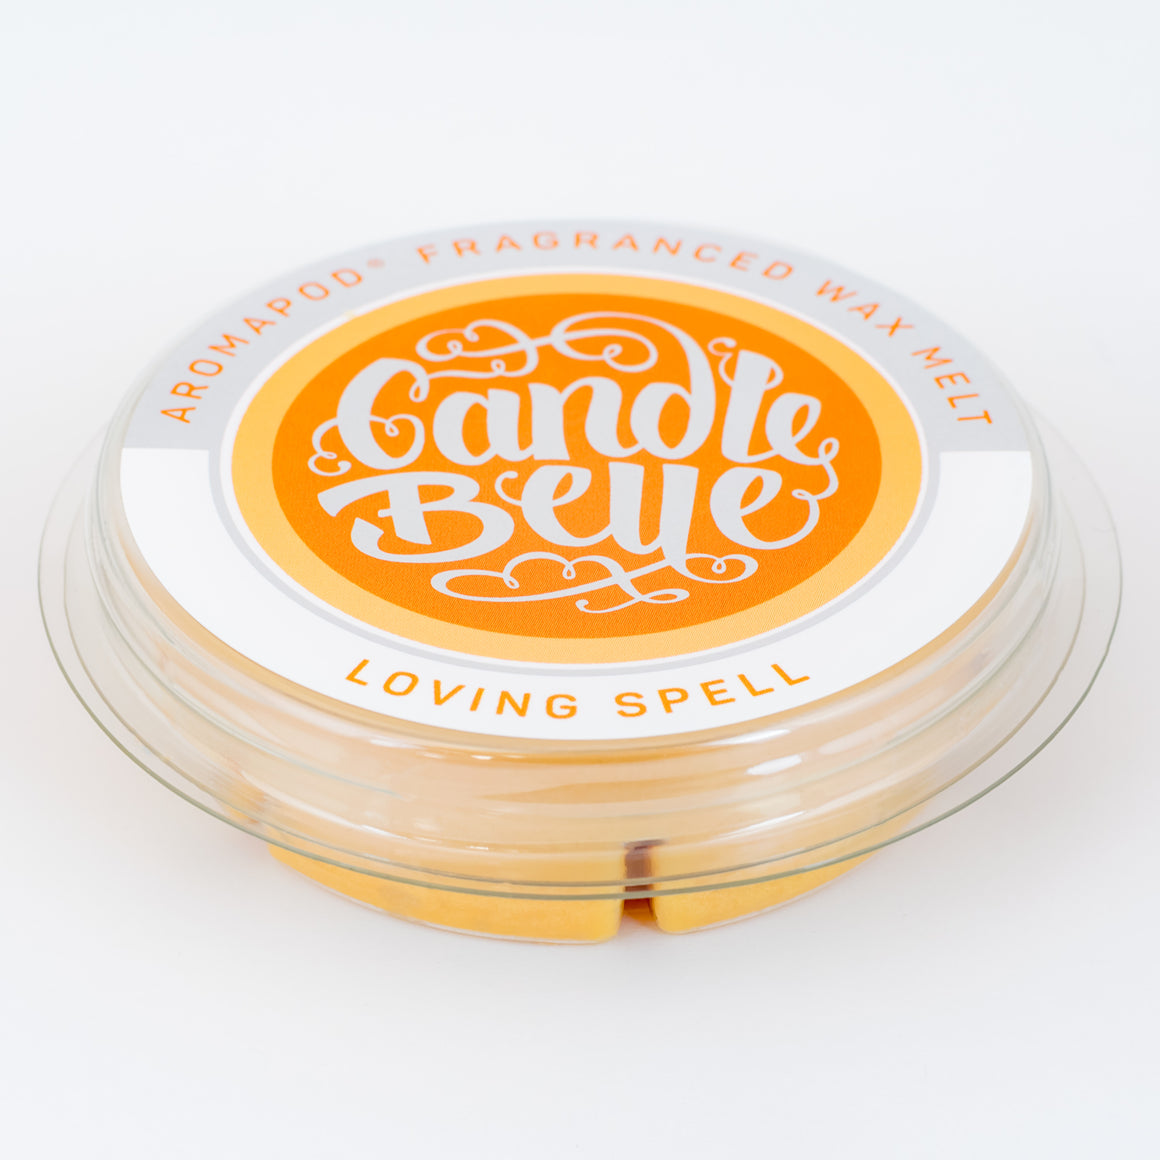 Candle Belle® Aromapod® Loving Spell Fragranced Wax Melt 48g (9 Pack) - Candle Belle® Trade